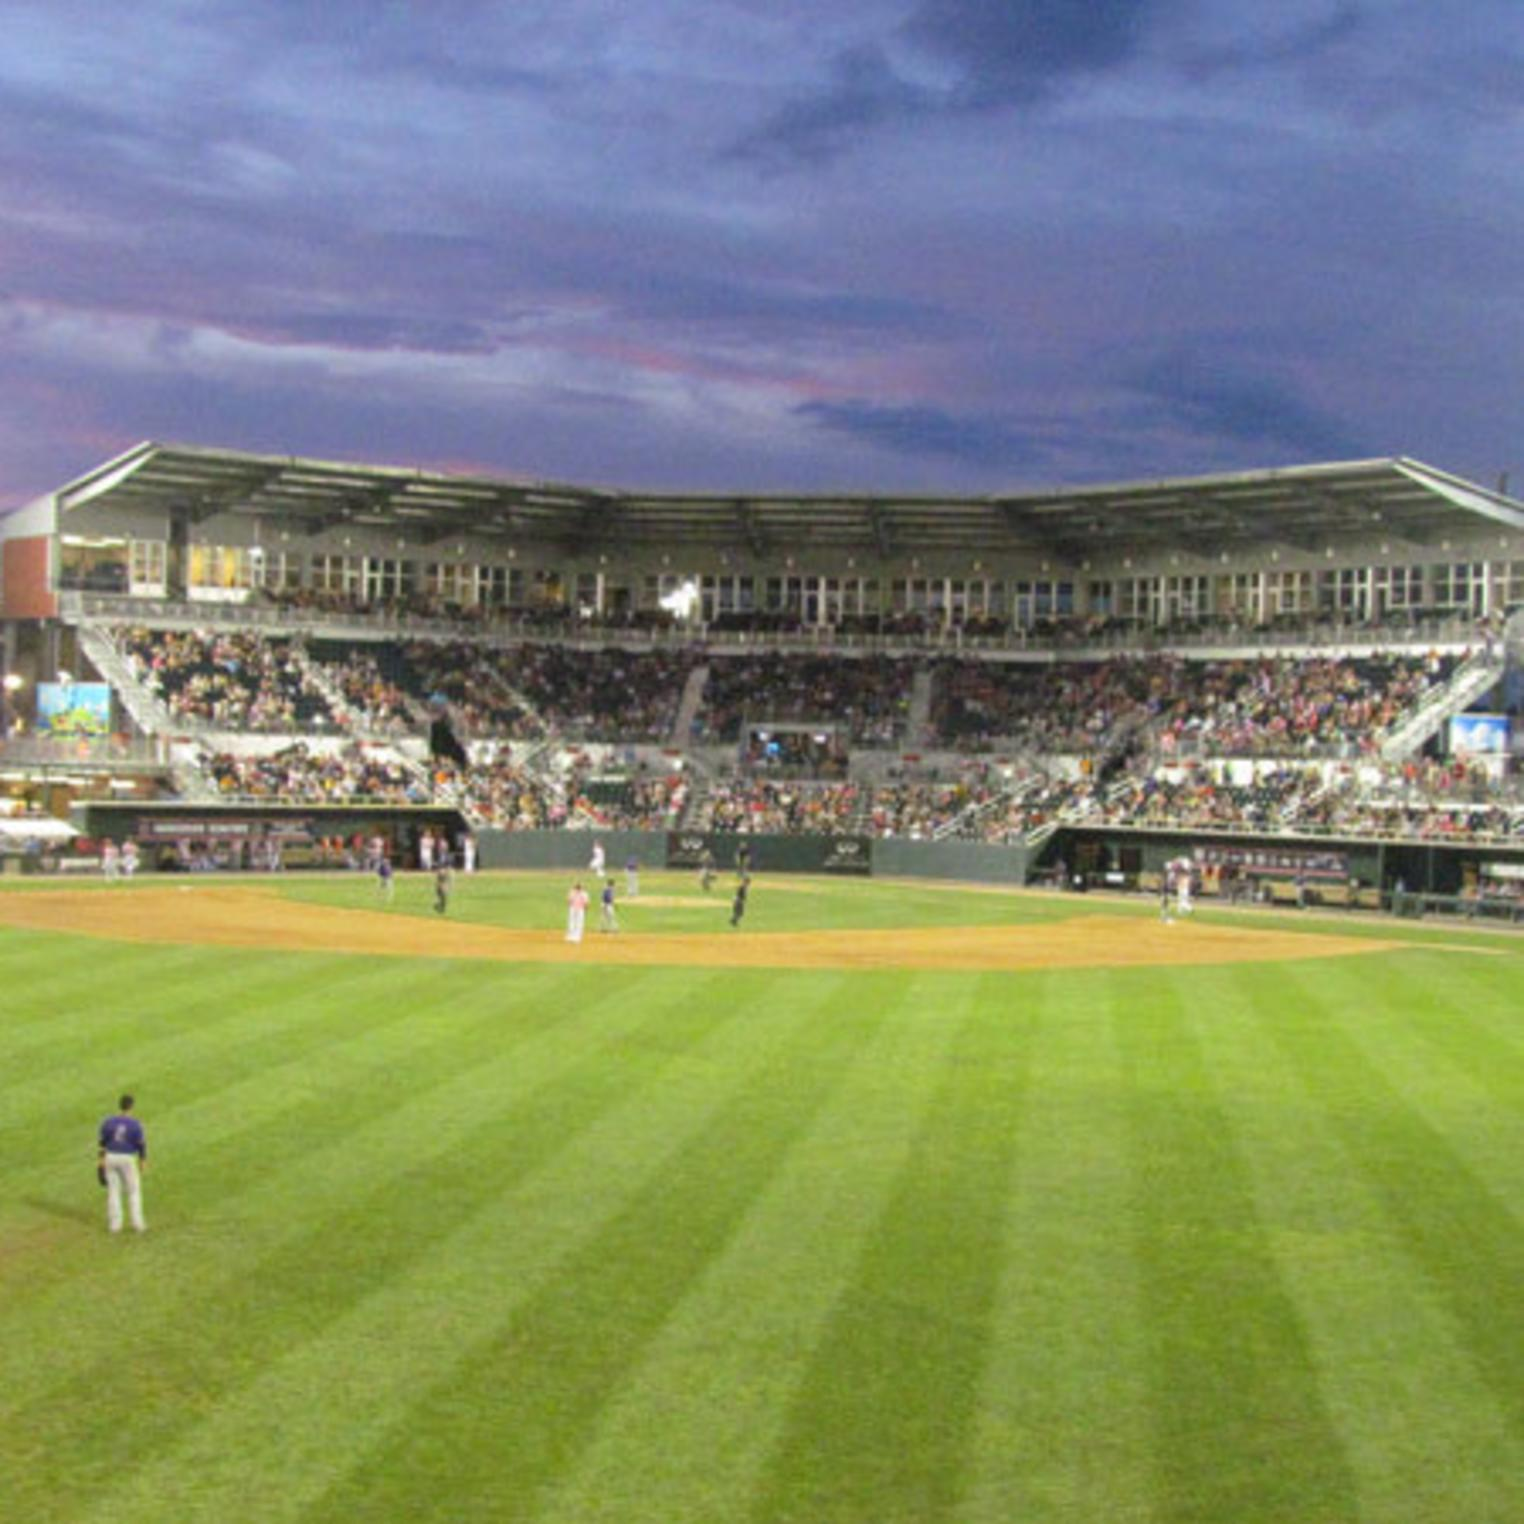 Harrisburg Senators Nighttime Game